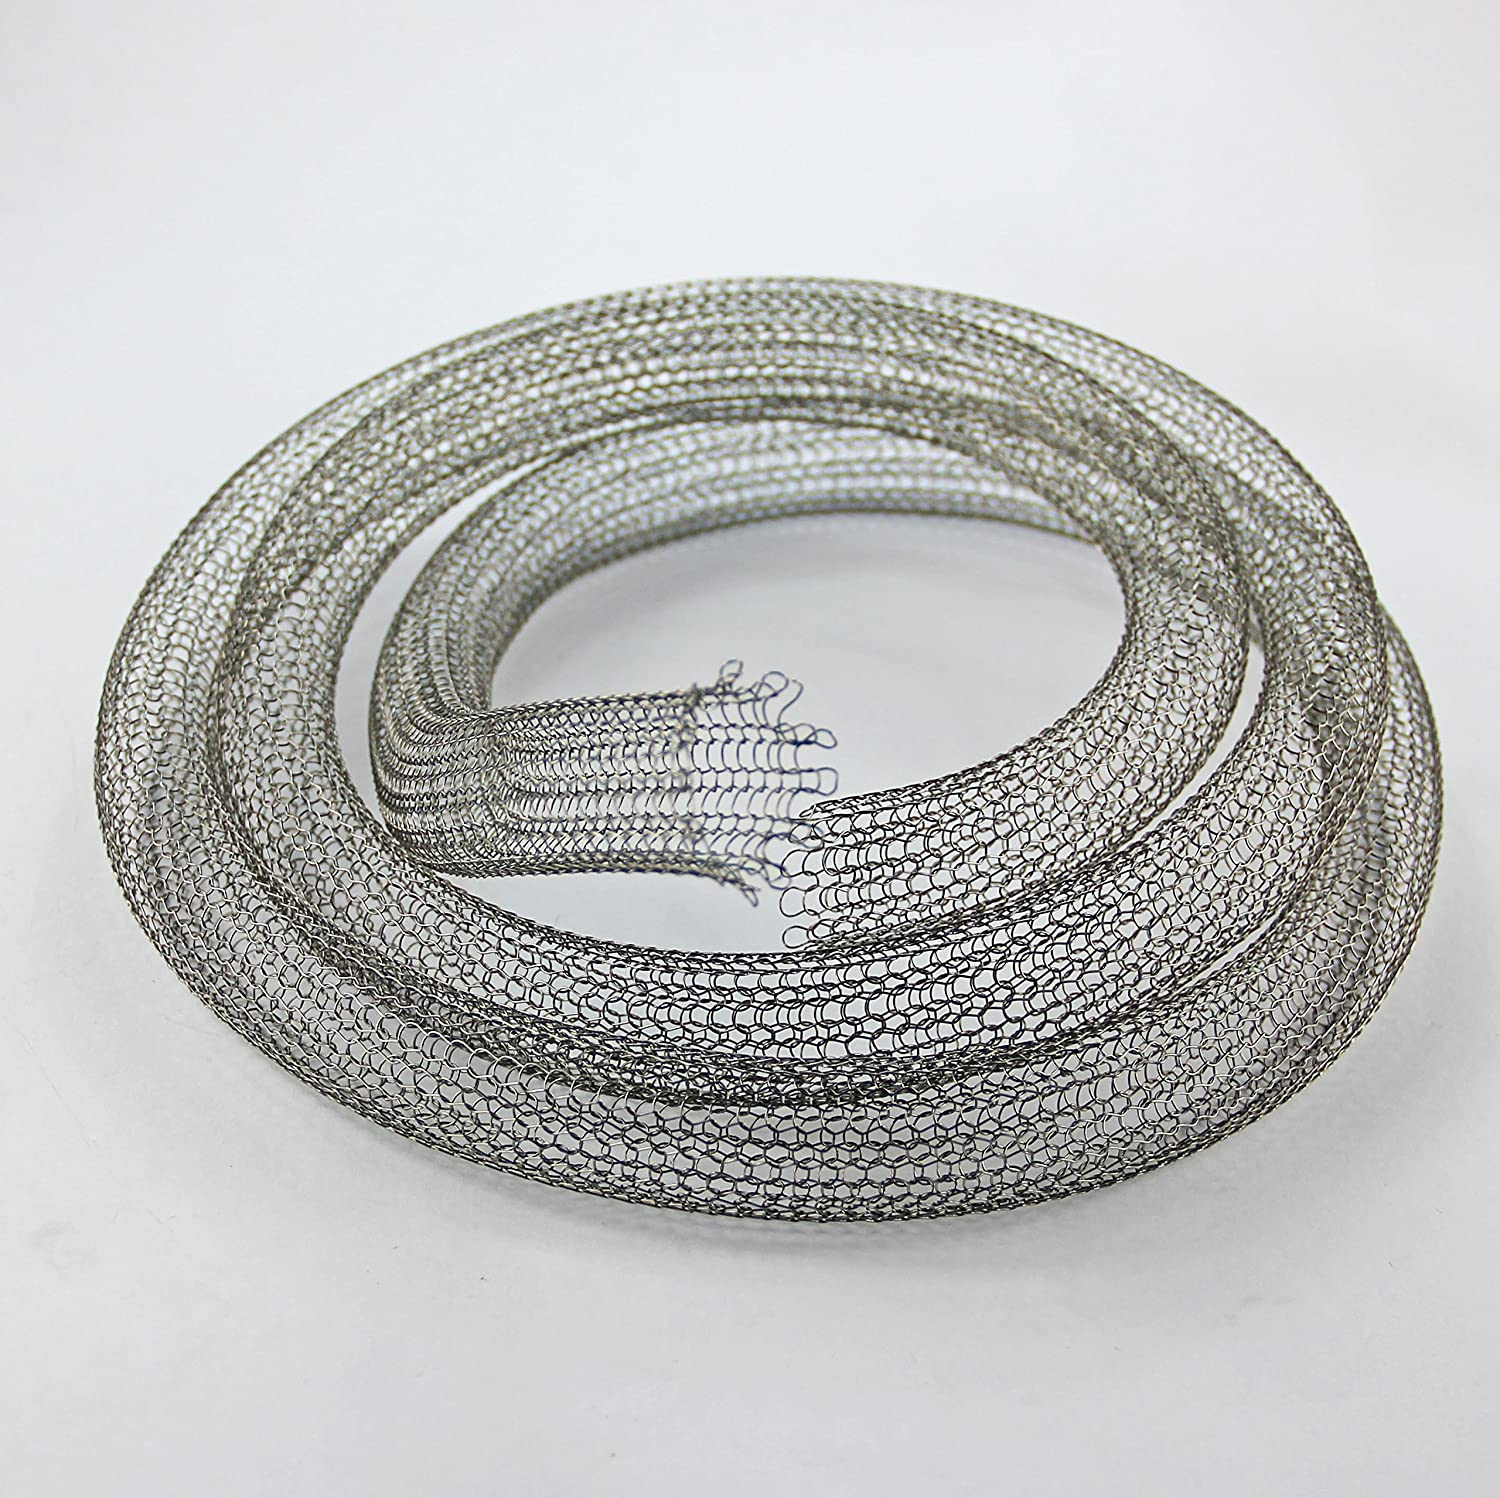 Stainless Steel Knitted Wire Mesh Tubing - Hop Filter Mesh - 22mm Diameter - 1 Metre - FREE SHIPPING The Mesh Company